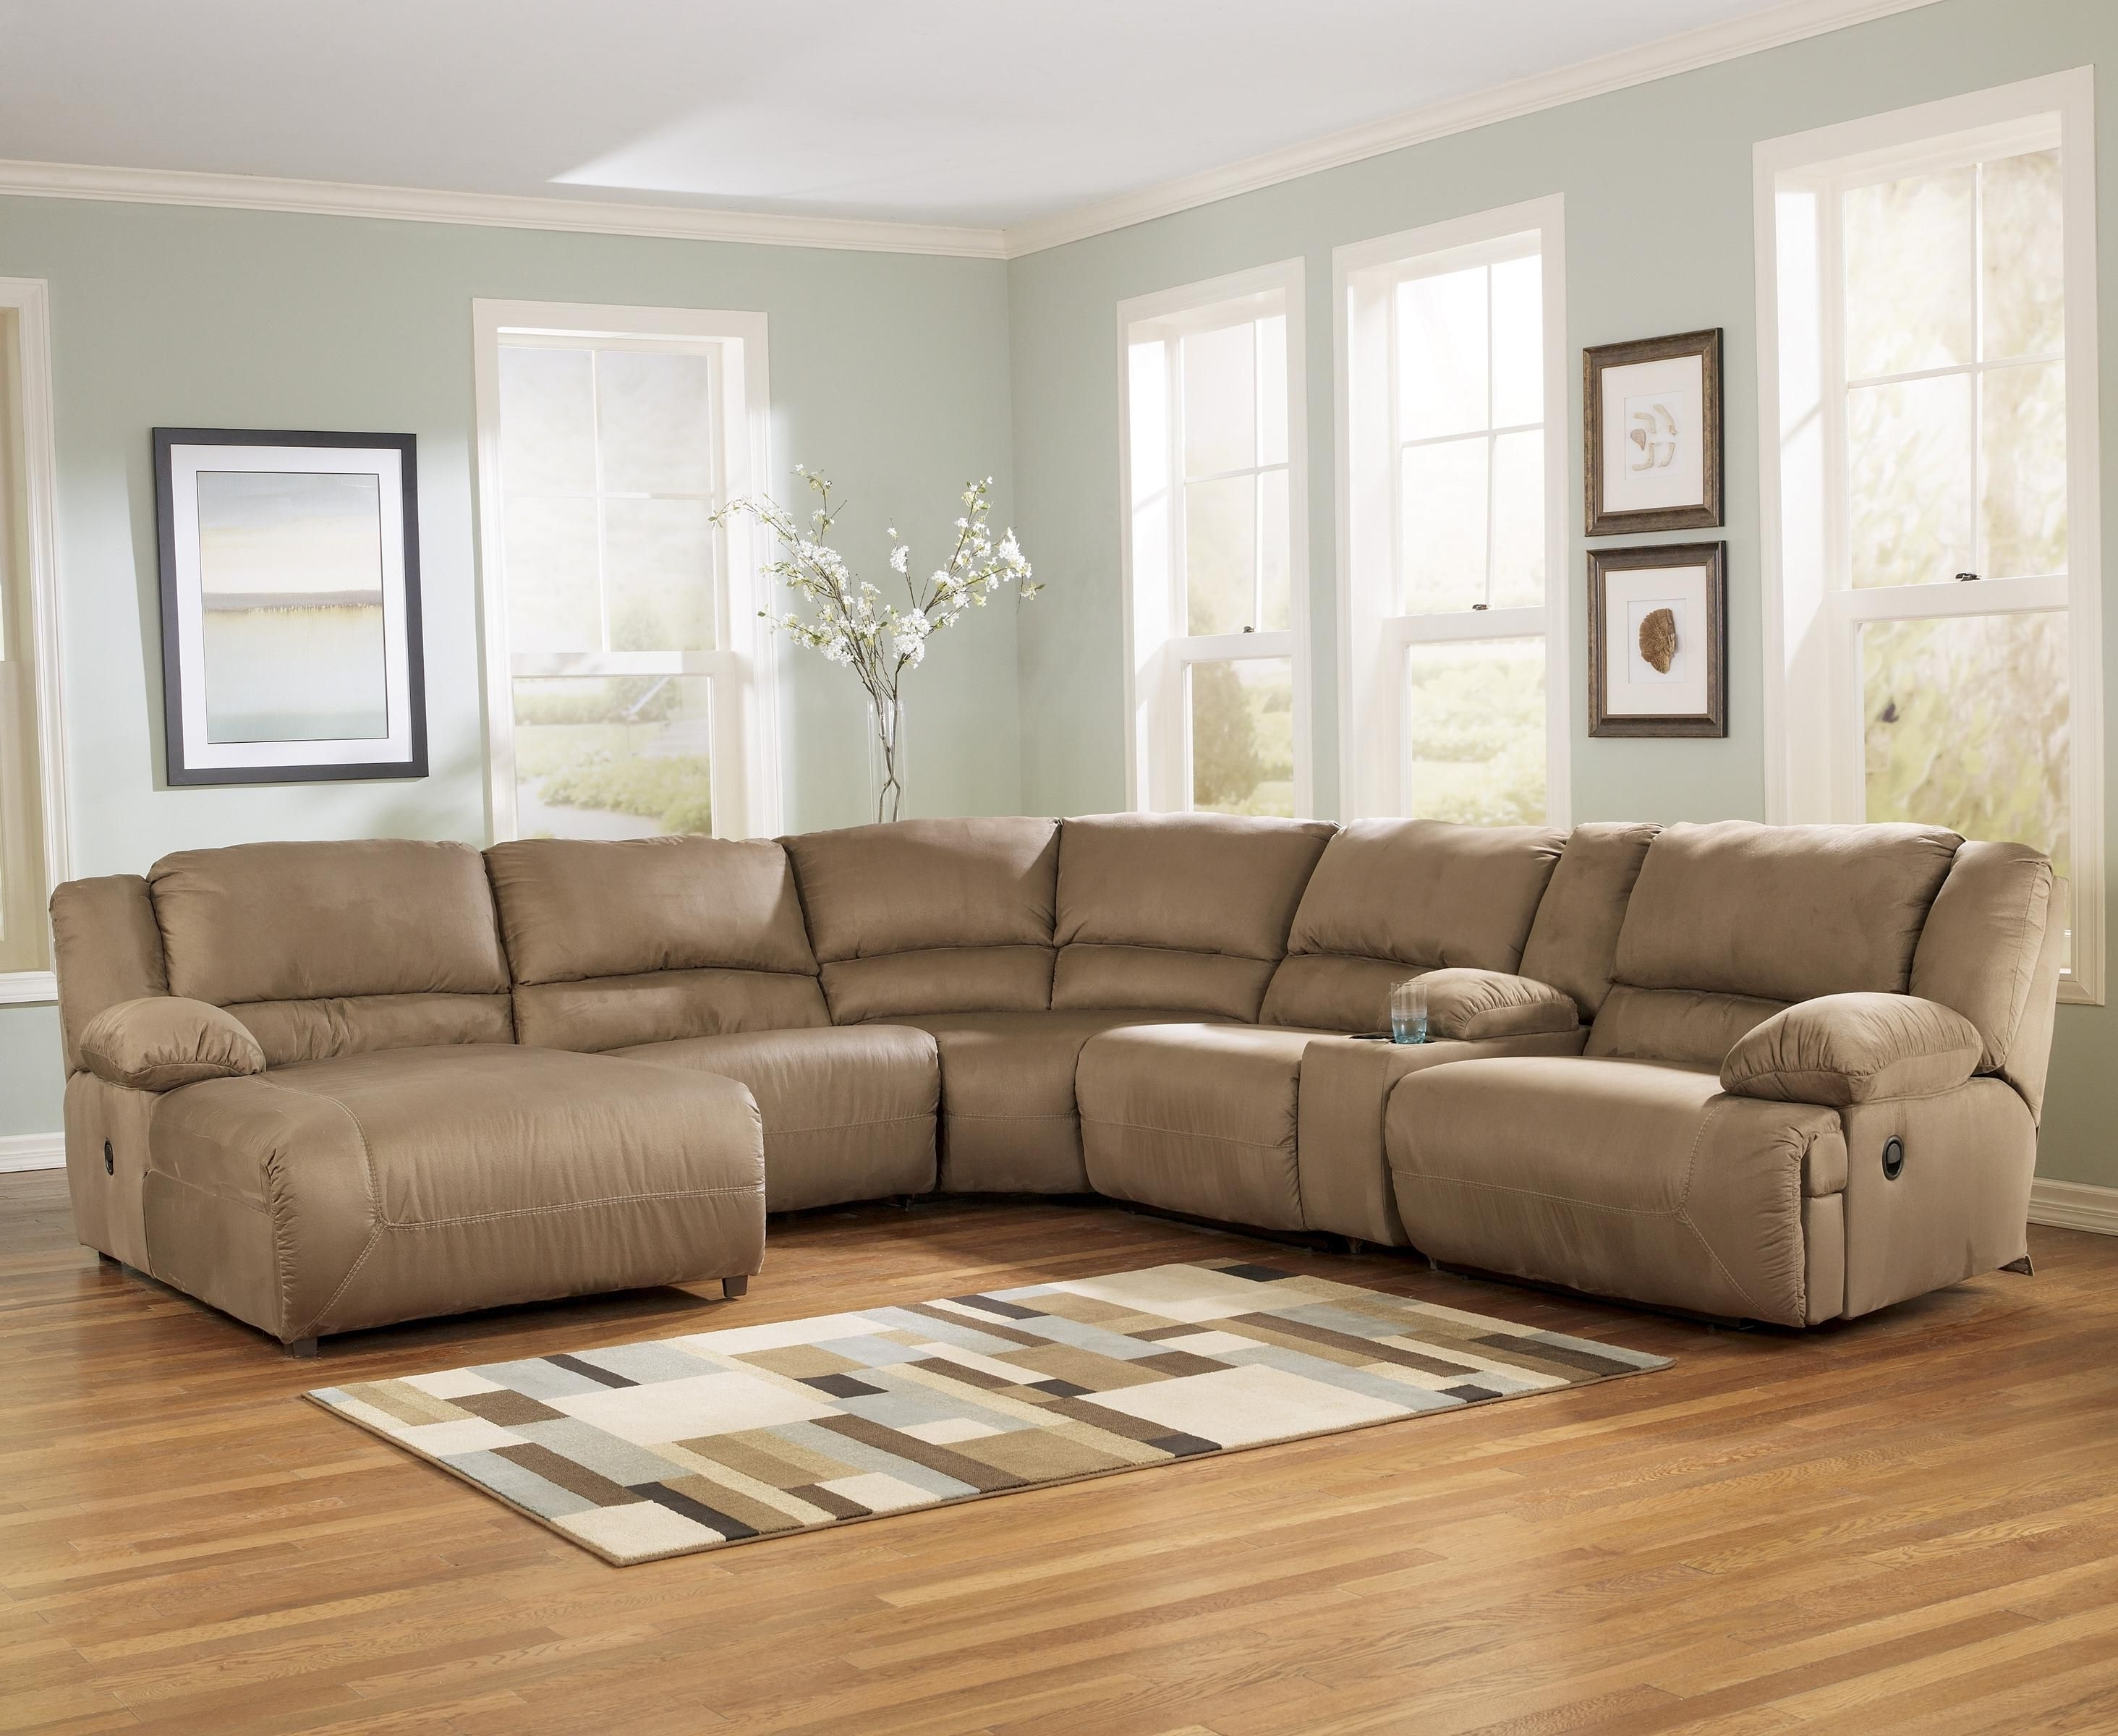 Widely Used Hogan – Mocha 6 Piece Motion Sectional With Right Chaise And With Harrisburg Pa Sectional Sofas (View 4 of 20)